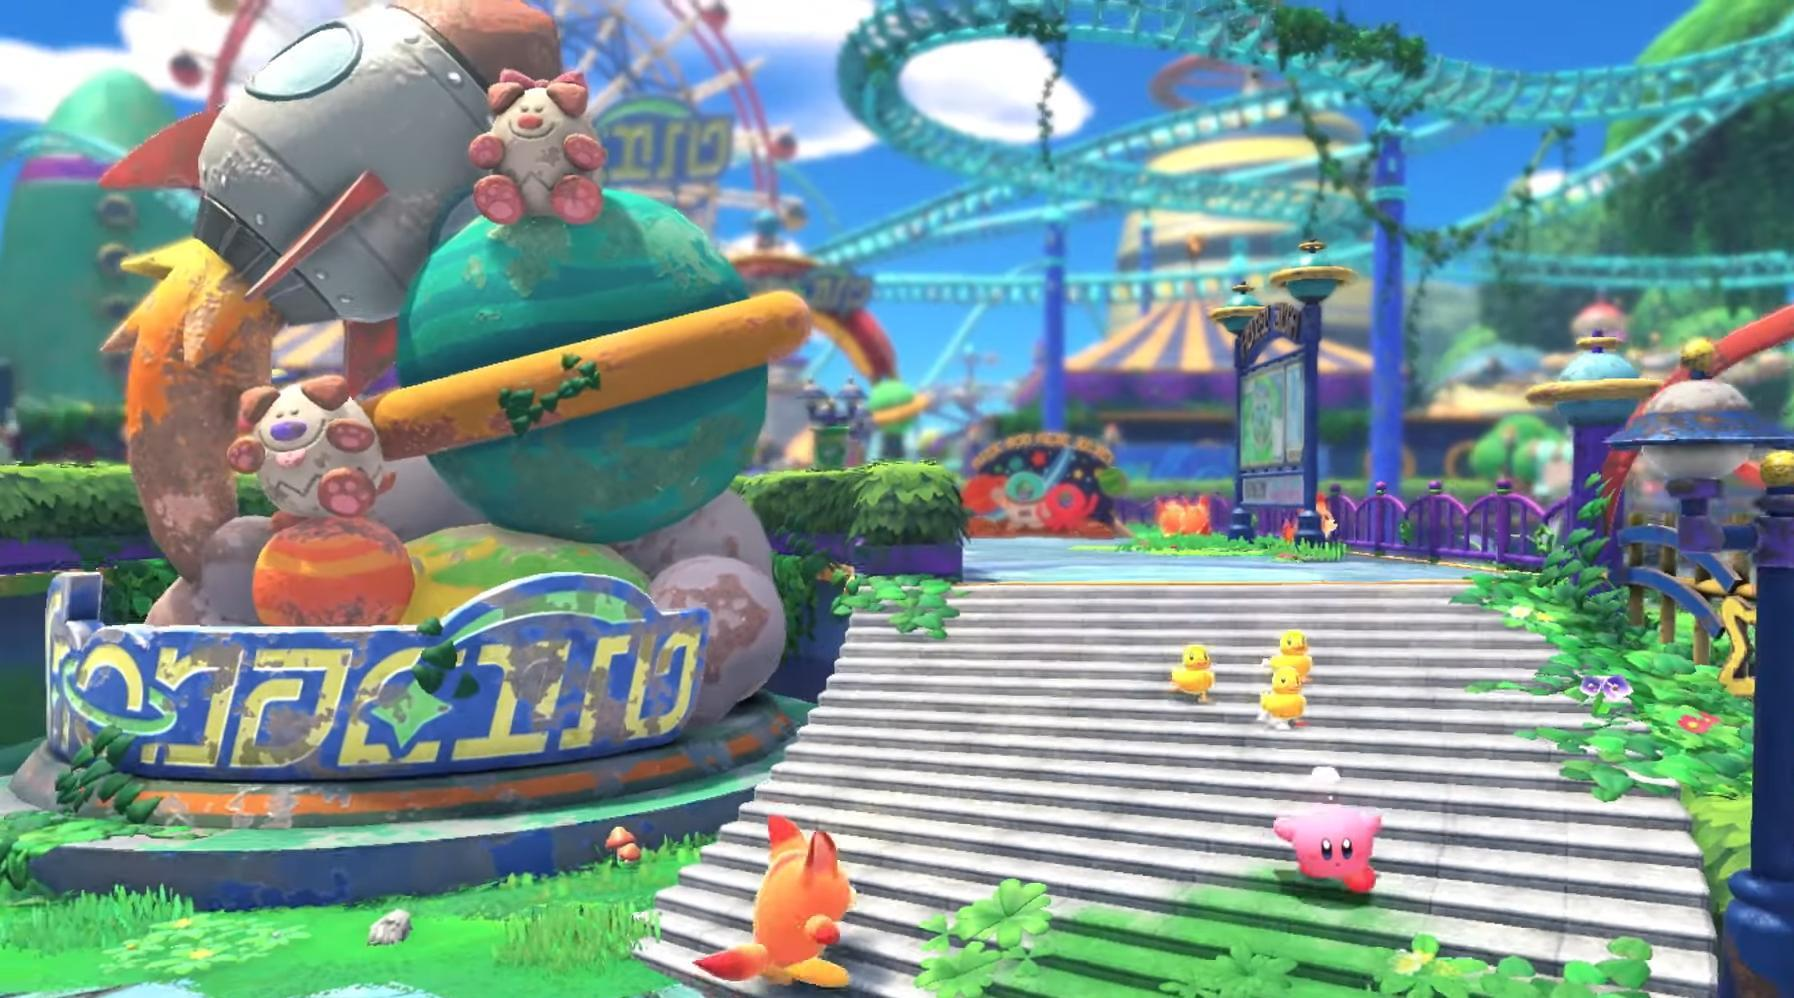 Kirby and the Forgotten Land - Kirby runs down a flight of stairs in an abandoned, overgrown theme park